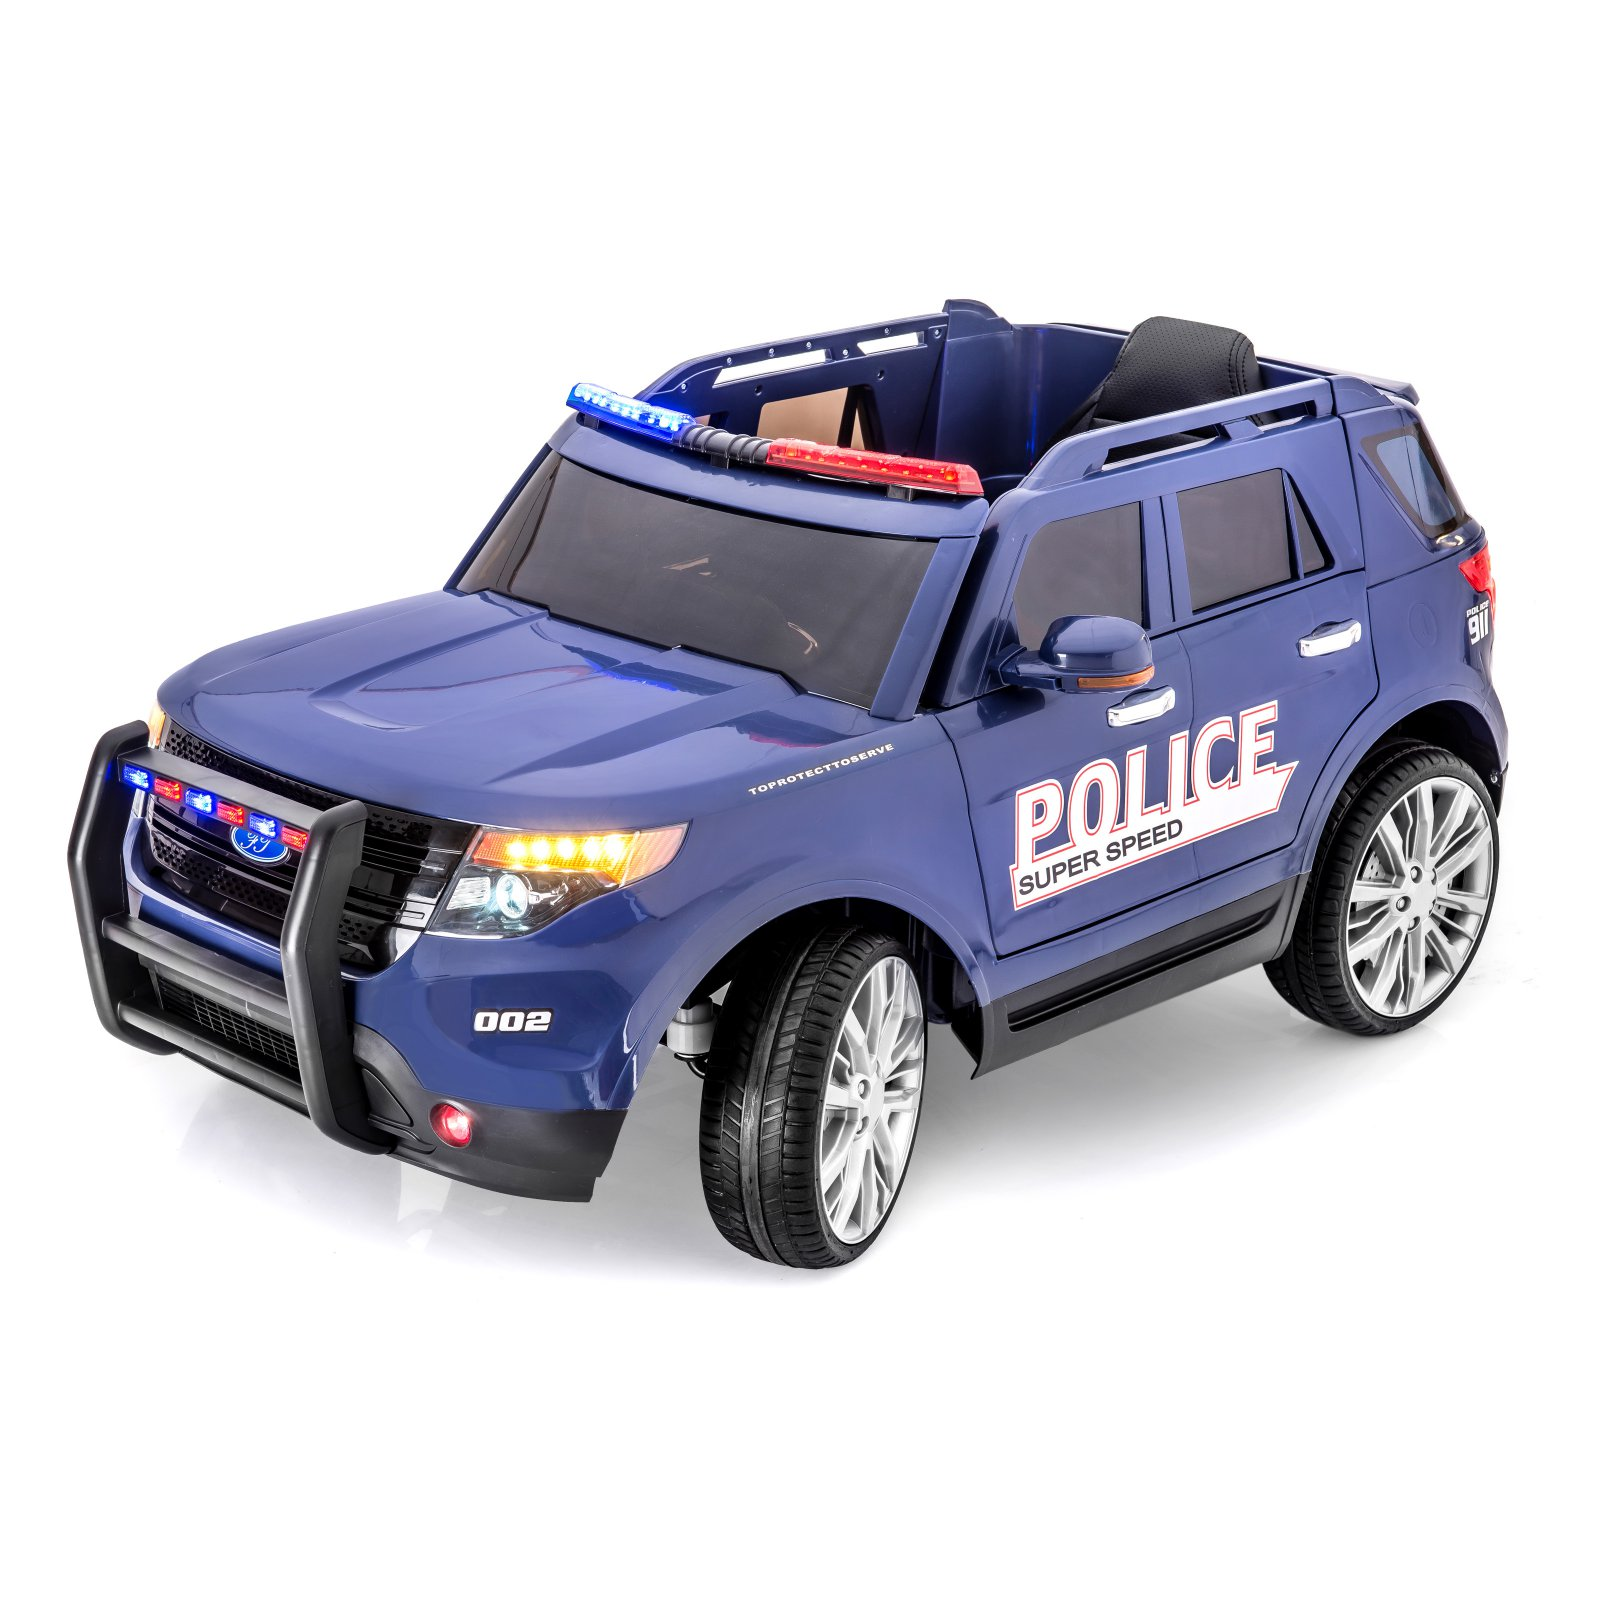 SPORTrax Ford Explorer Style Police Truck Battery Powered...